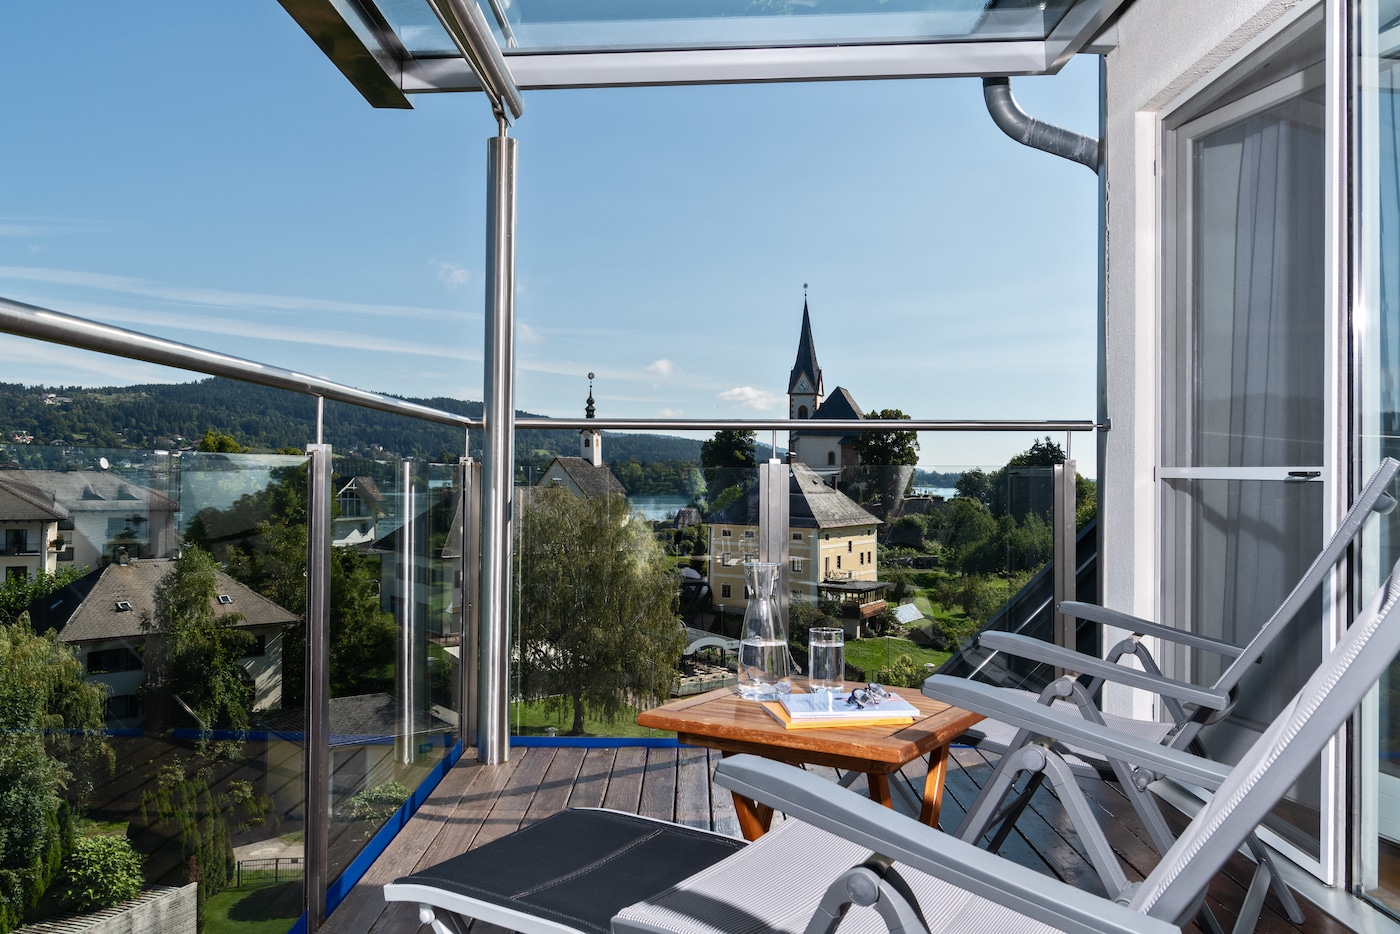 Balcony of Deluxe Suite VIVAMAYR Maria Wörth with village view